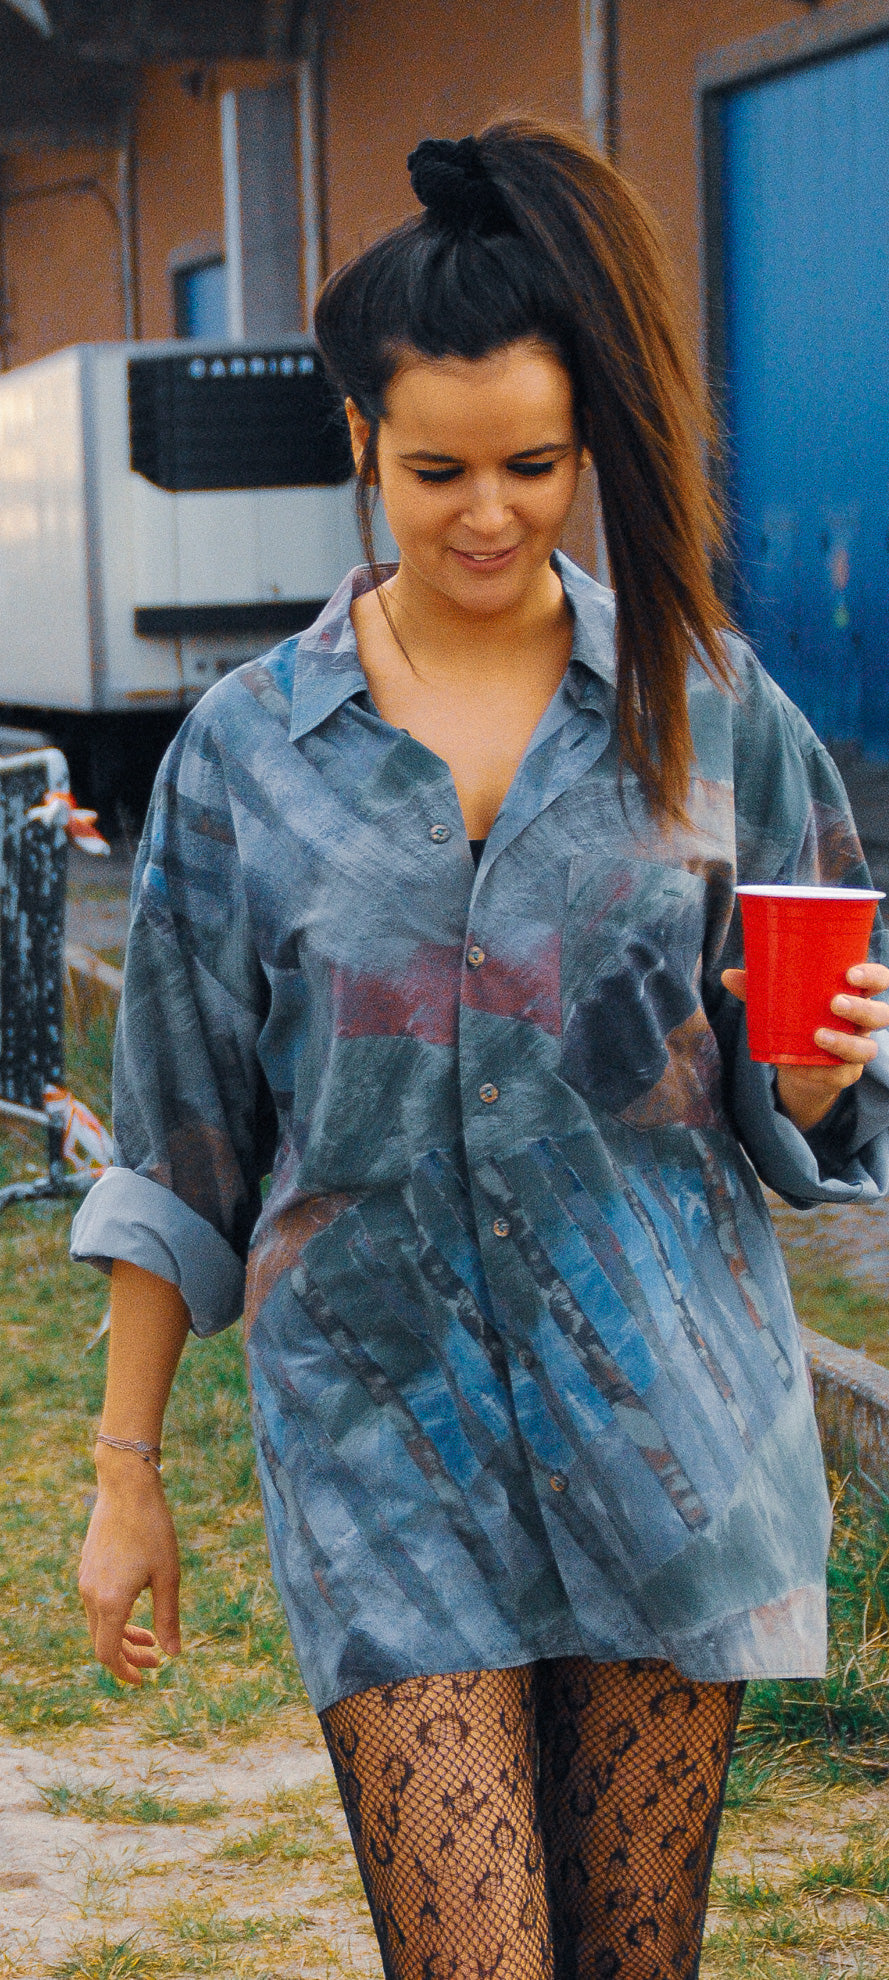 women-wearing-long-vintage-shirt-from-fresh-vintage-collection-in-green-walking-carrying-red-american-drink-cup